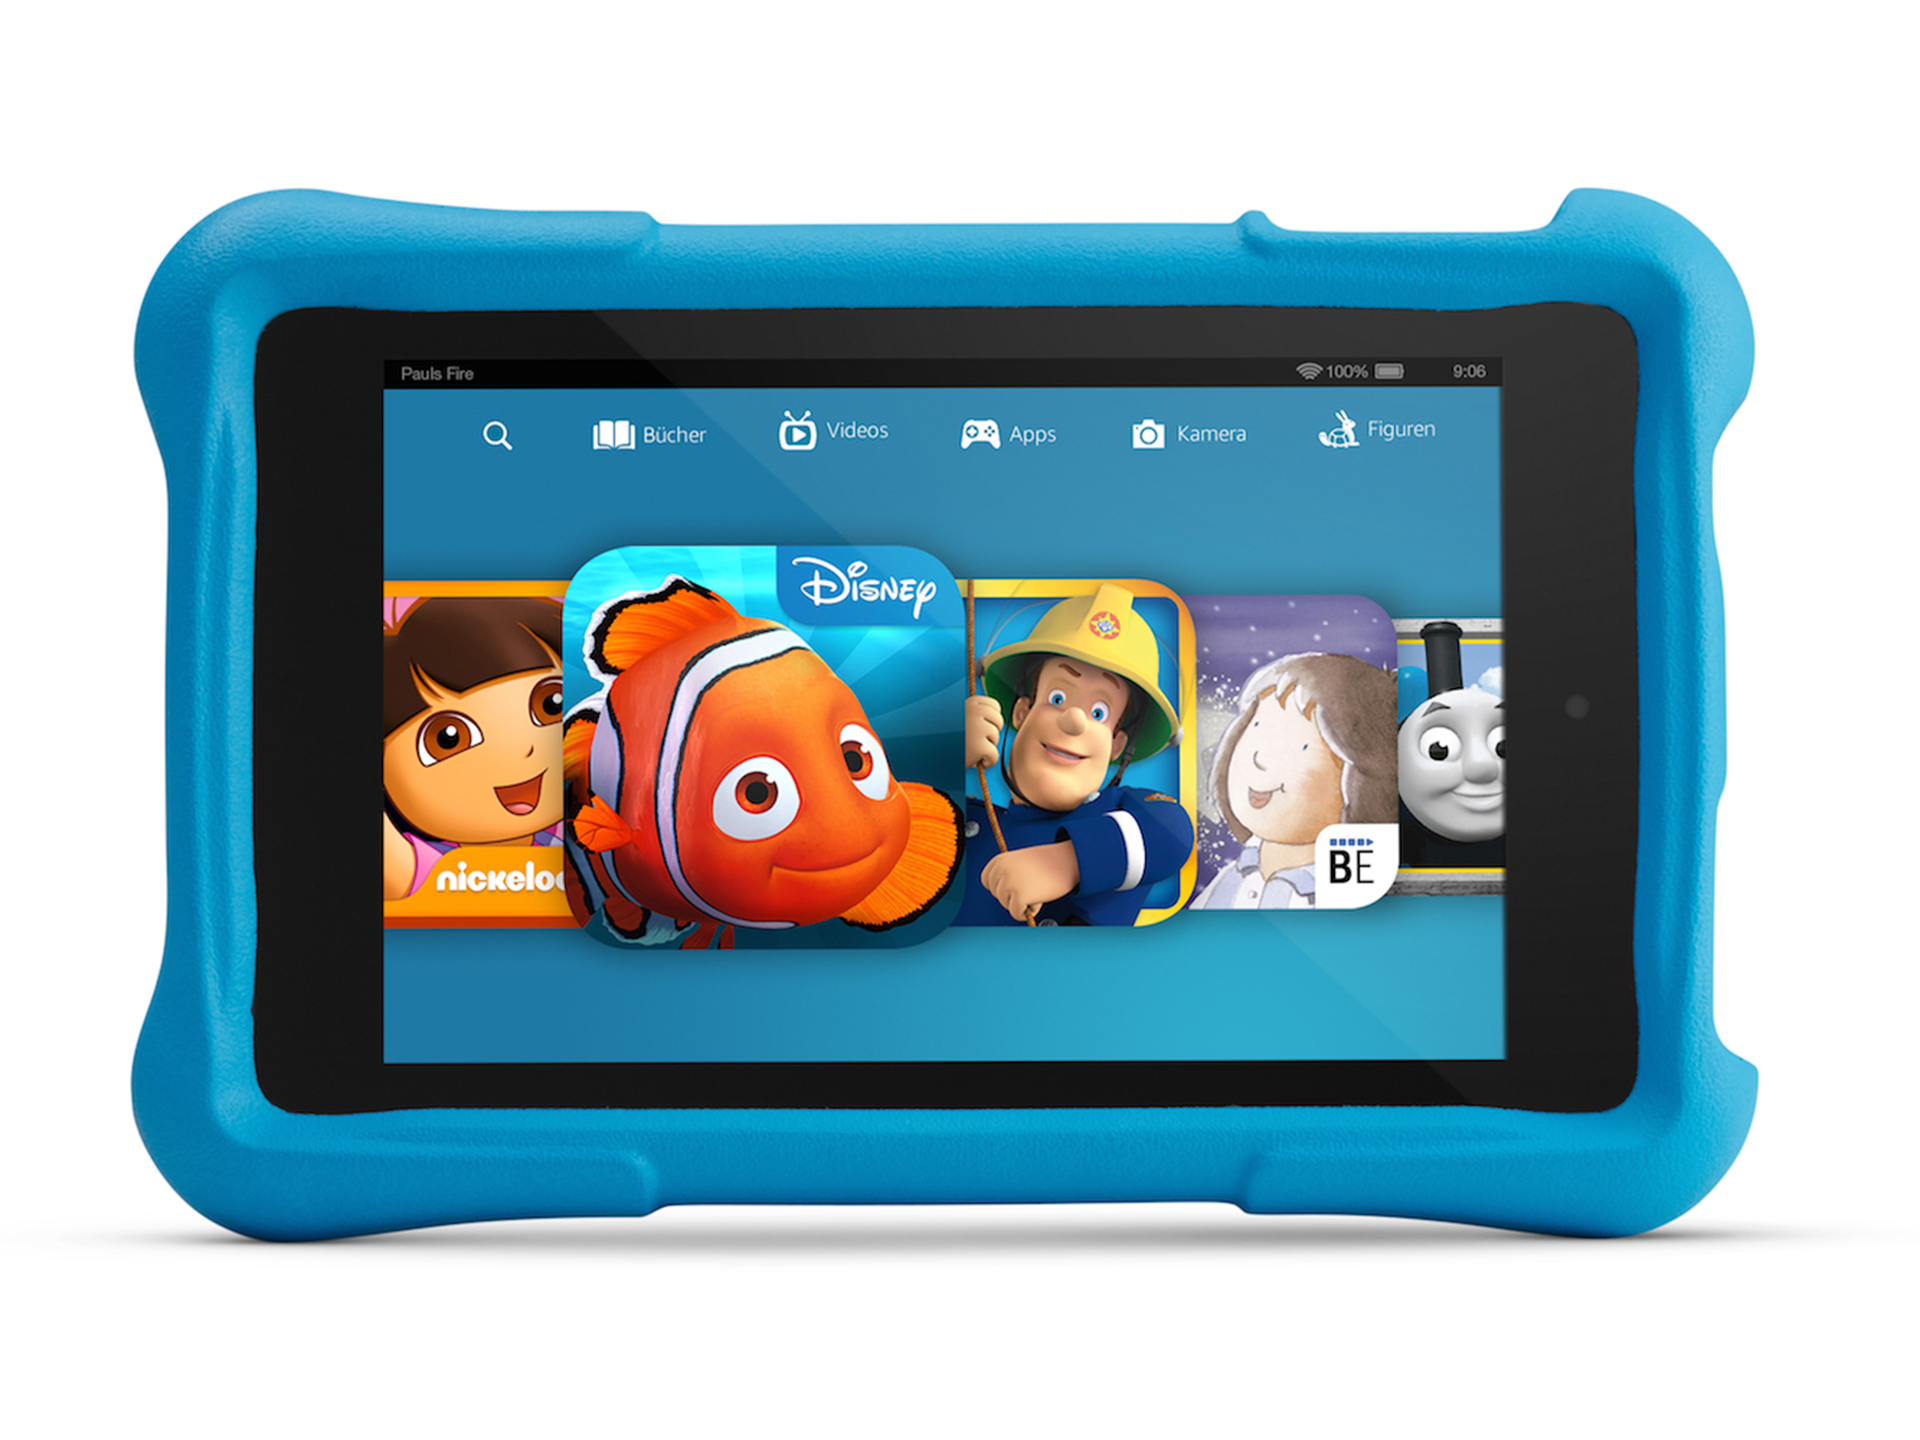 Amazon Kindle Fire HD 6 Kids Edition Tablet Review